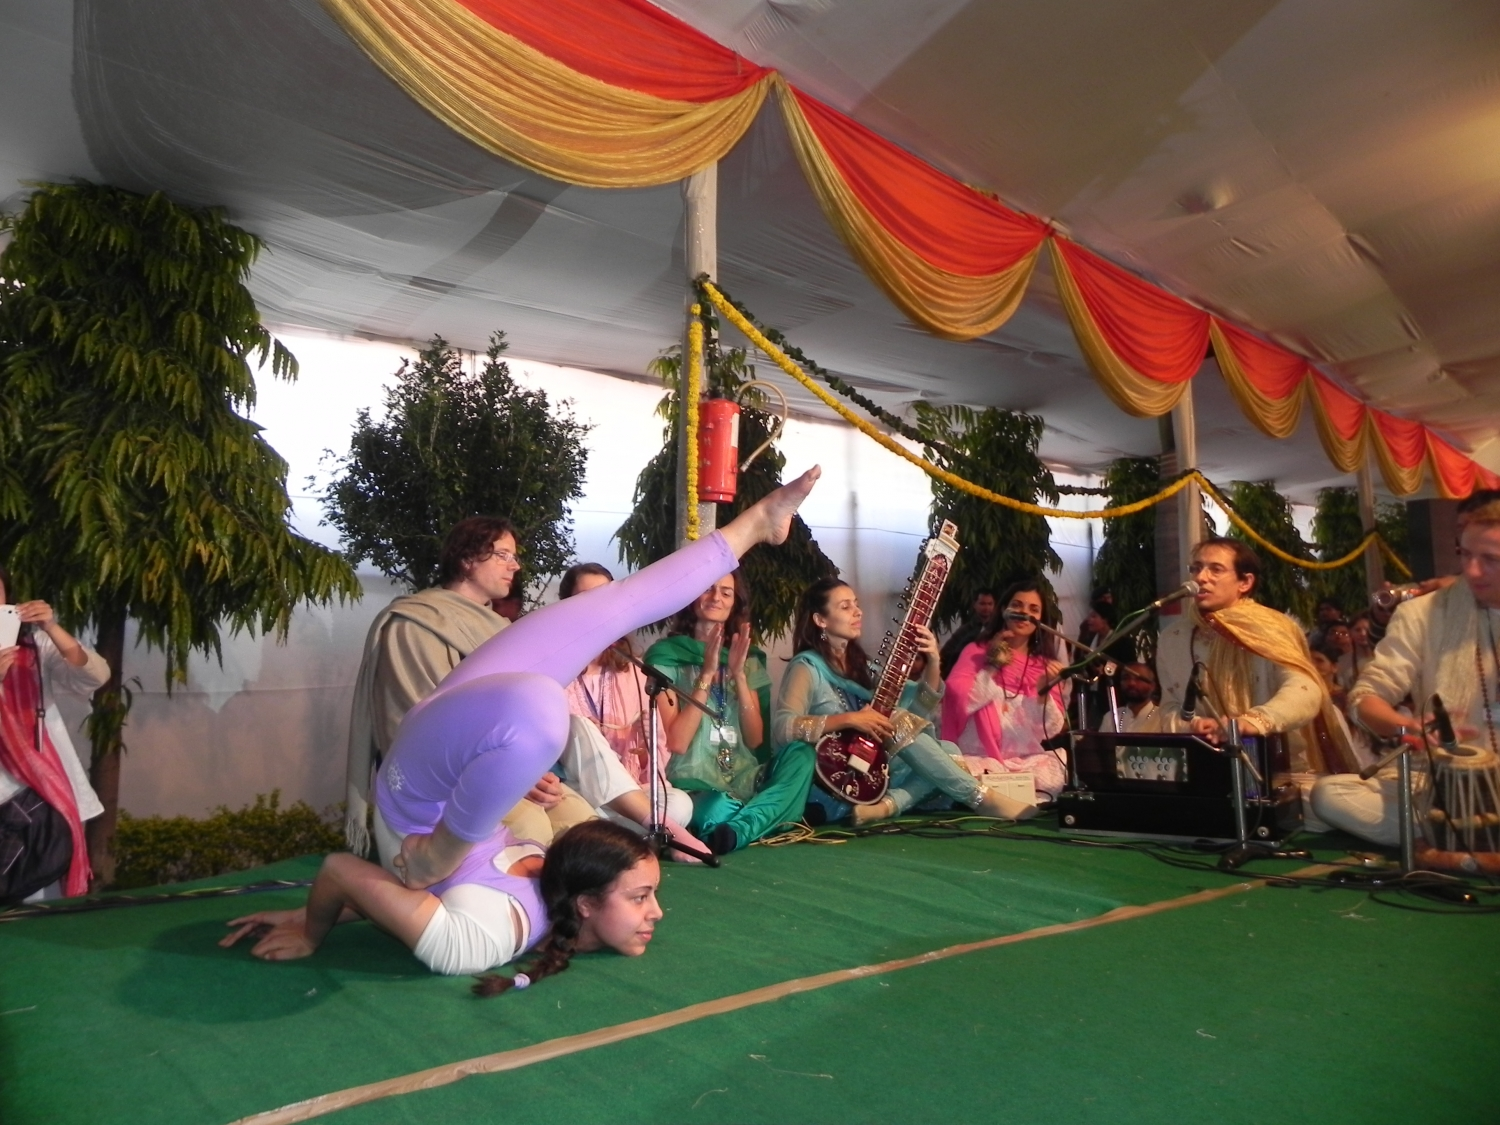 International Yoga Festival - rshikesh, India - 2013, March